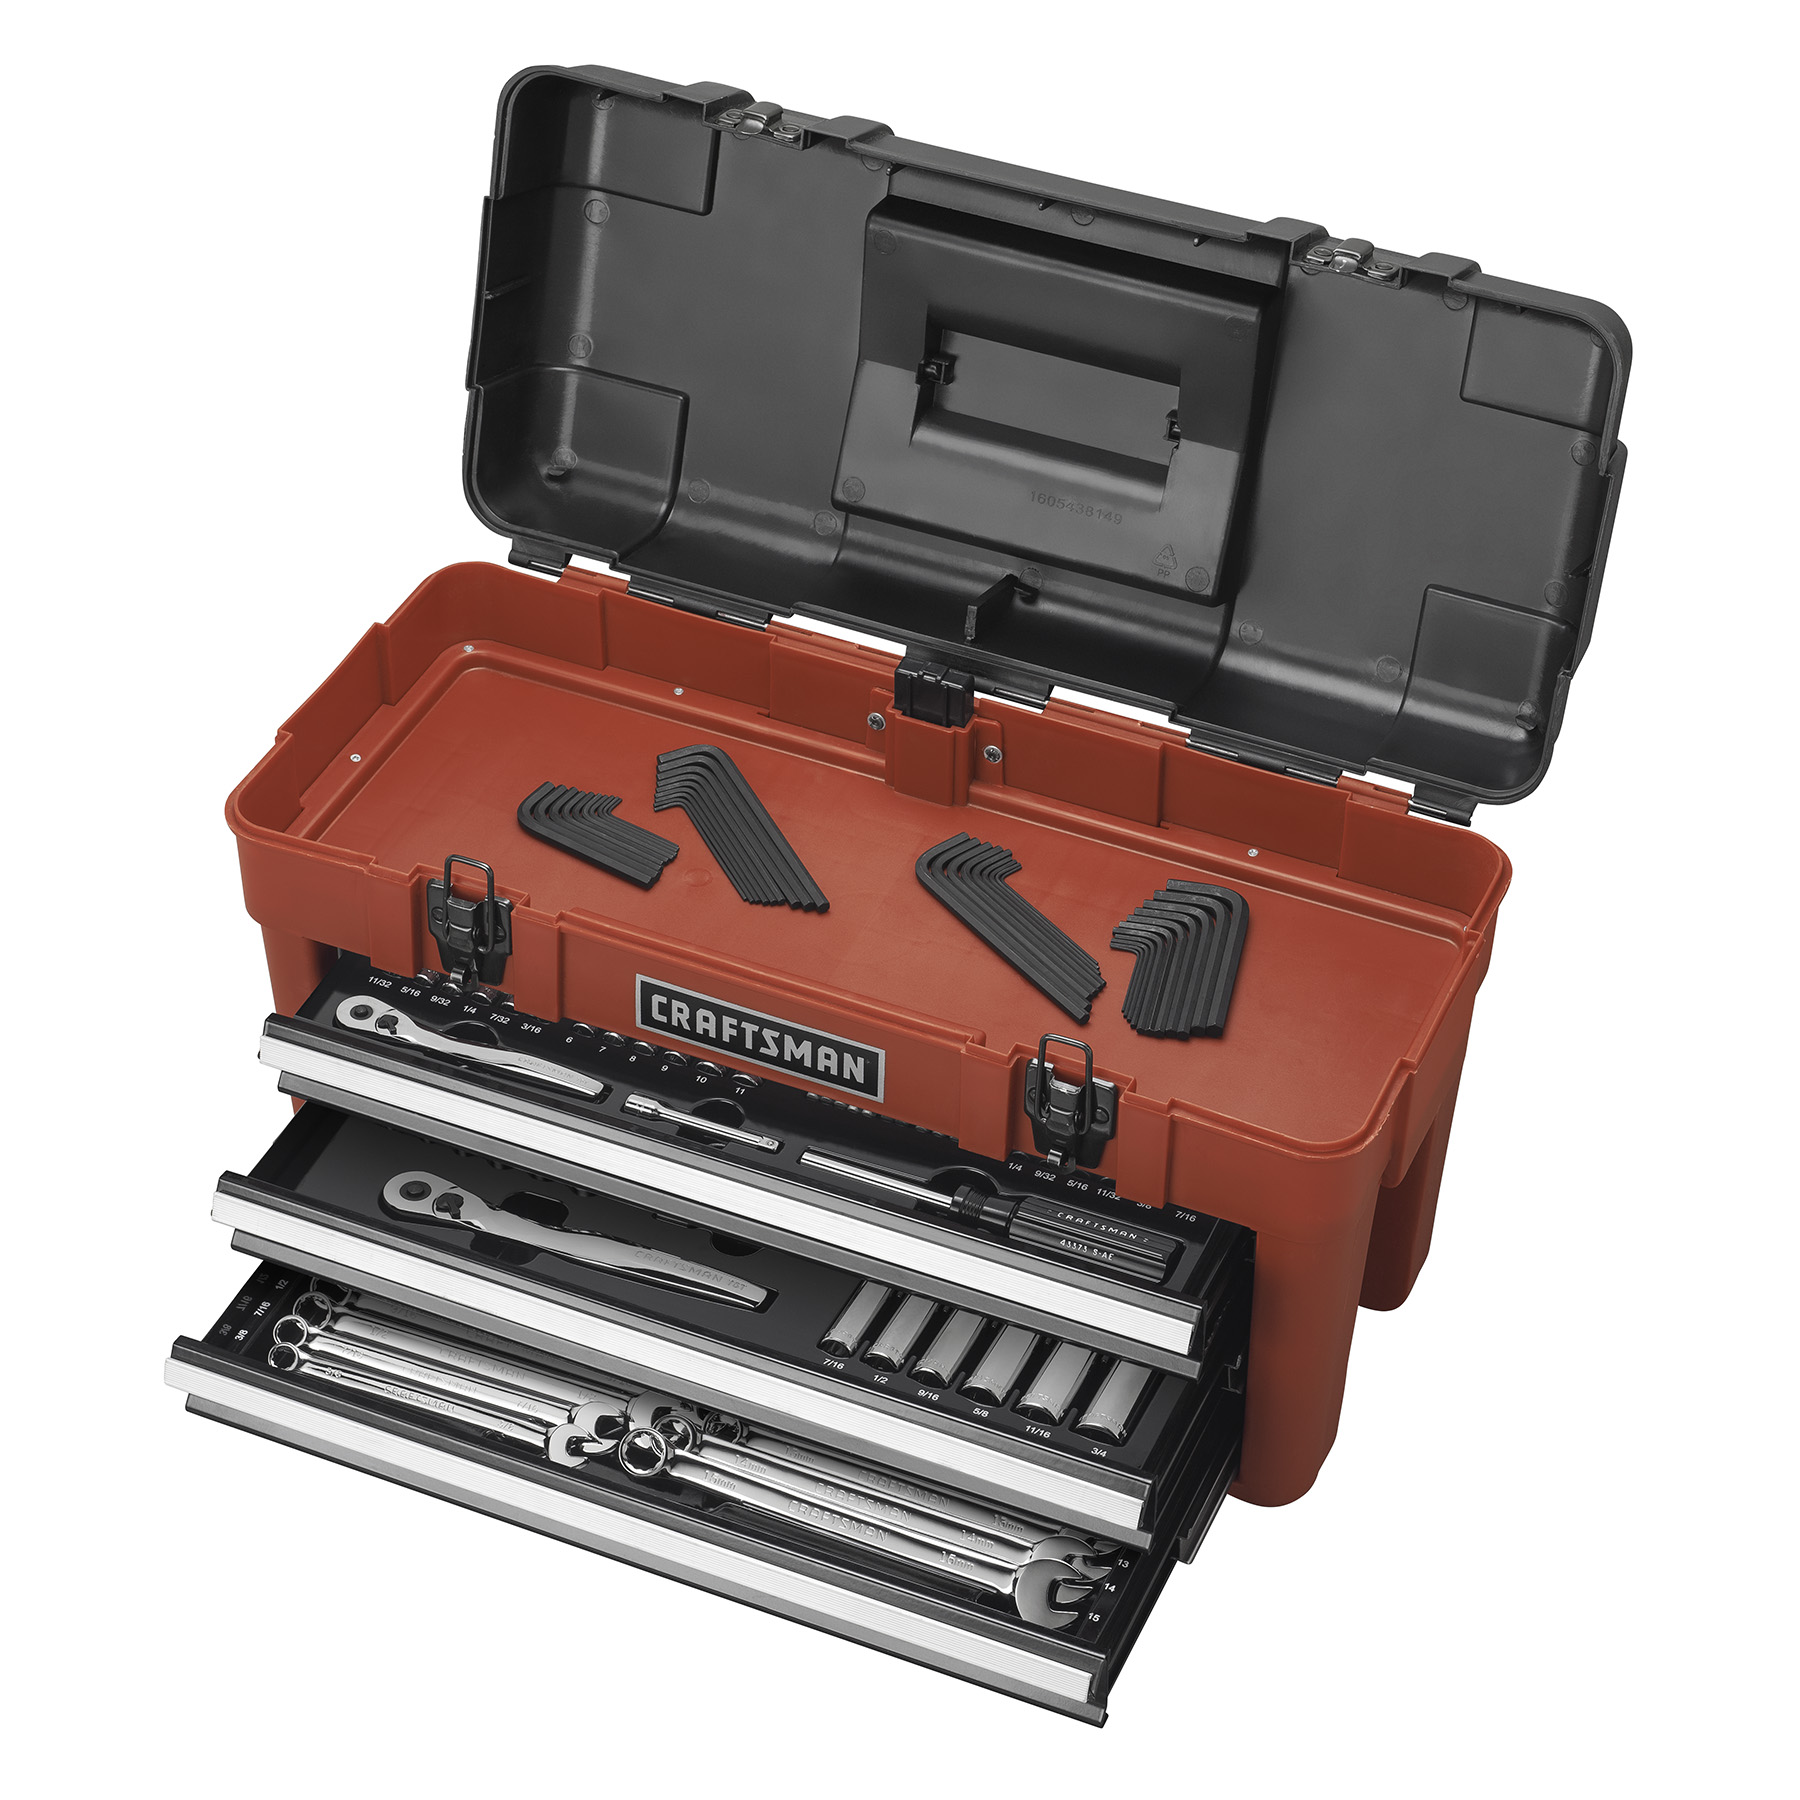 Craftsman 185-Piece Mechanics Tool Set with 3-Drawer Chest and 75 Tooth Ratchets